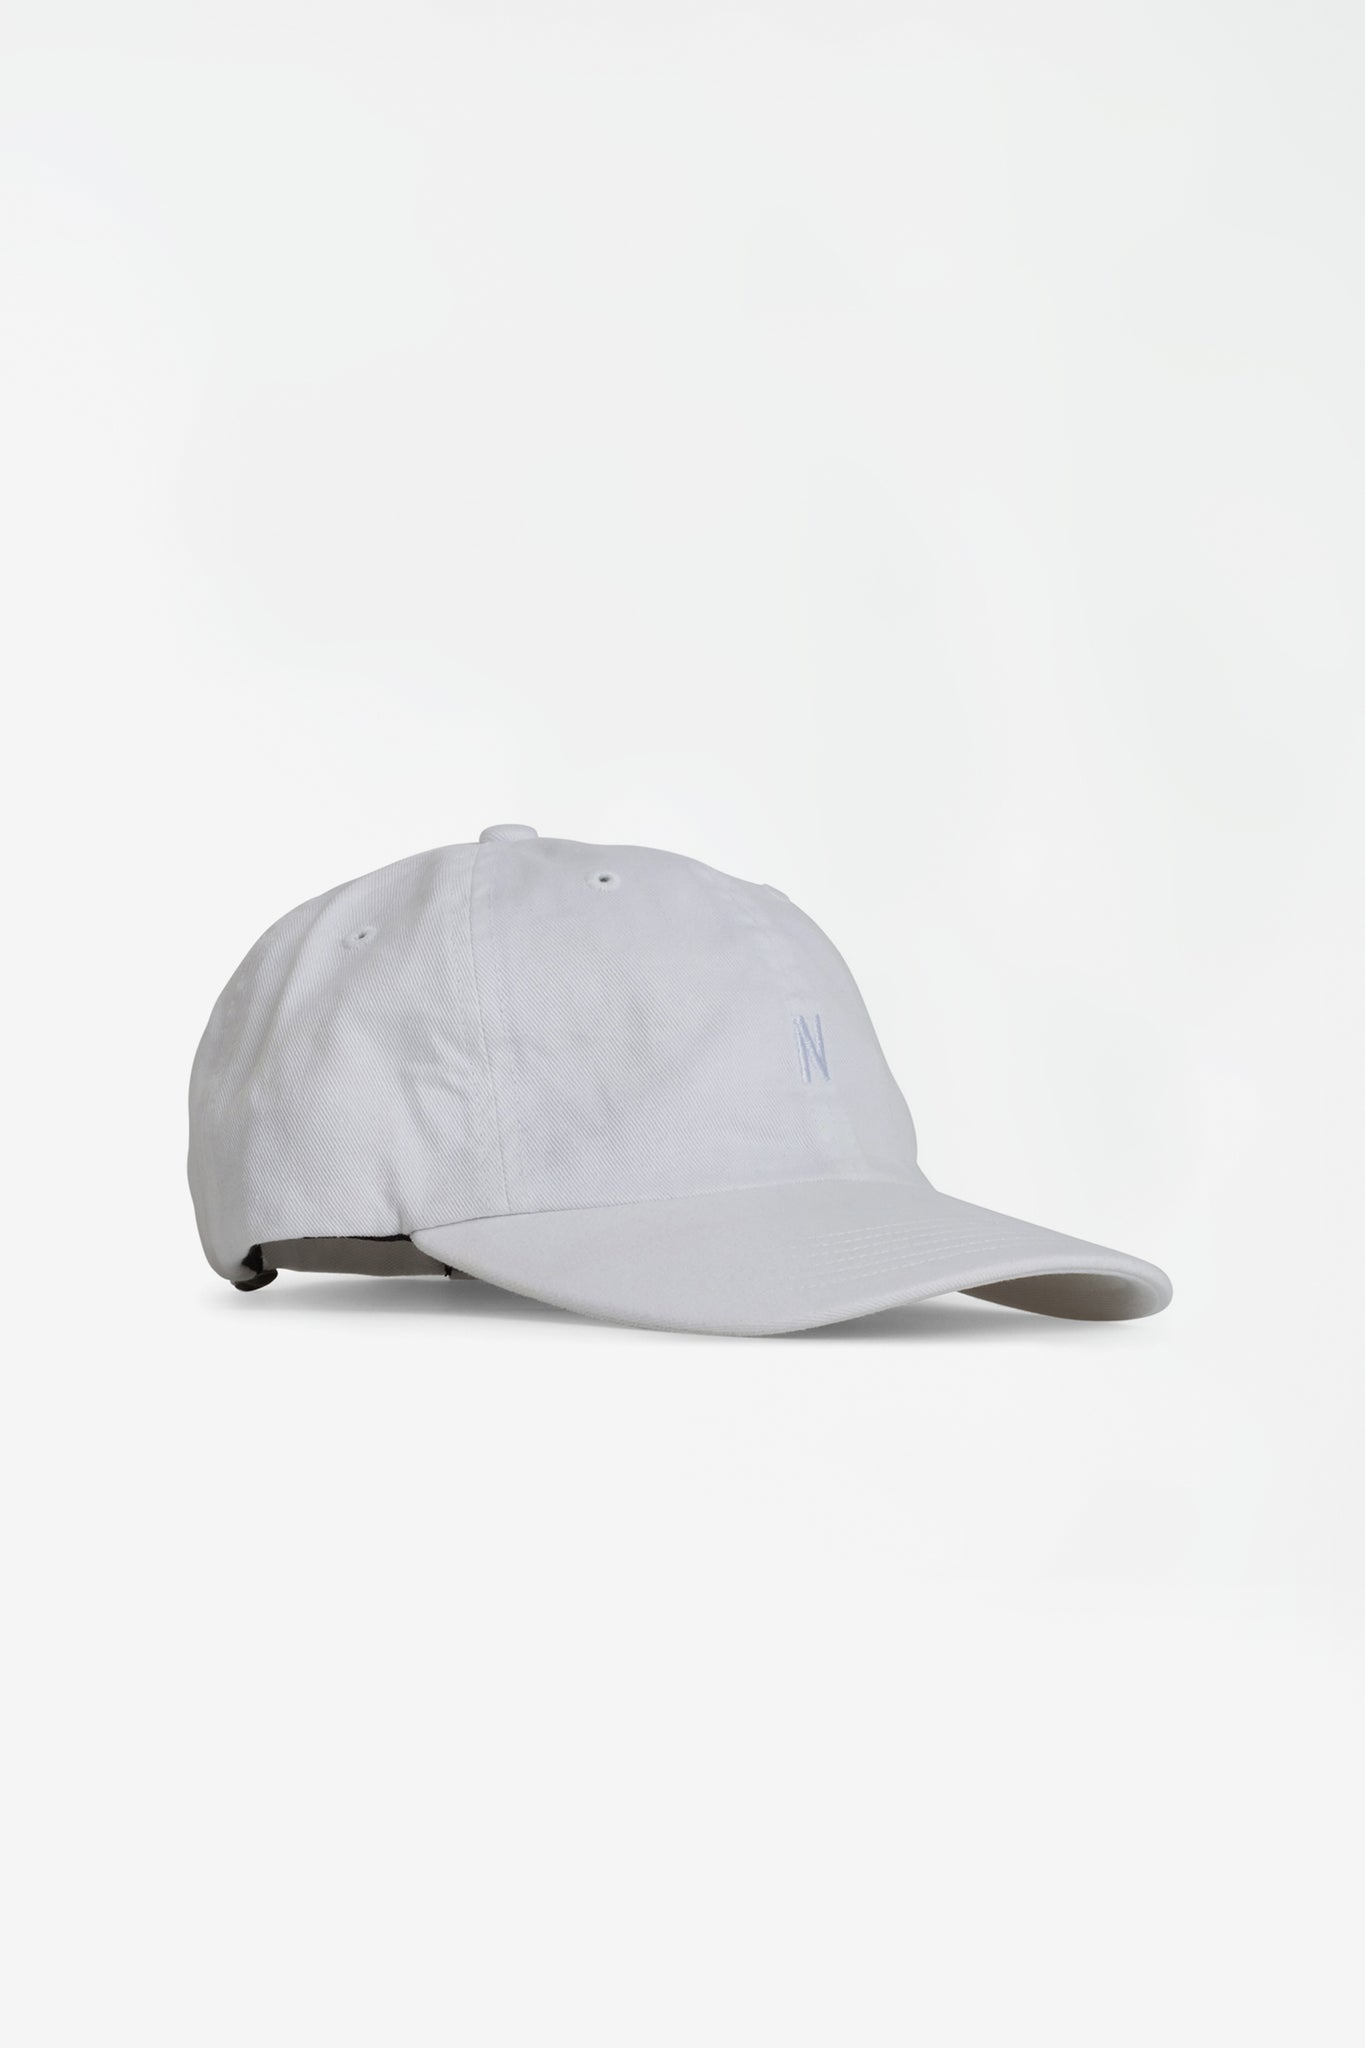 Twill sports cap white